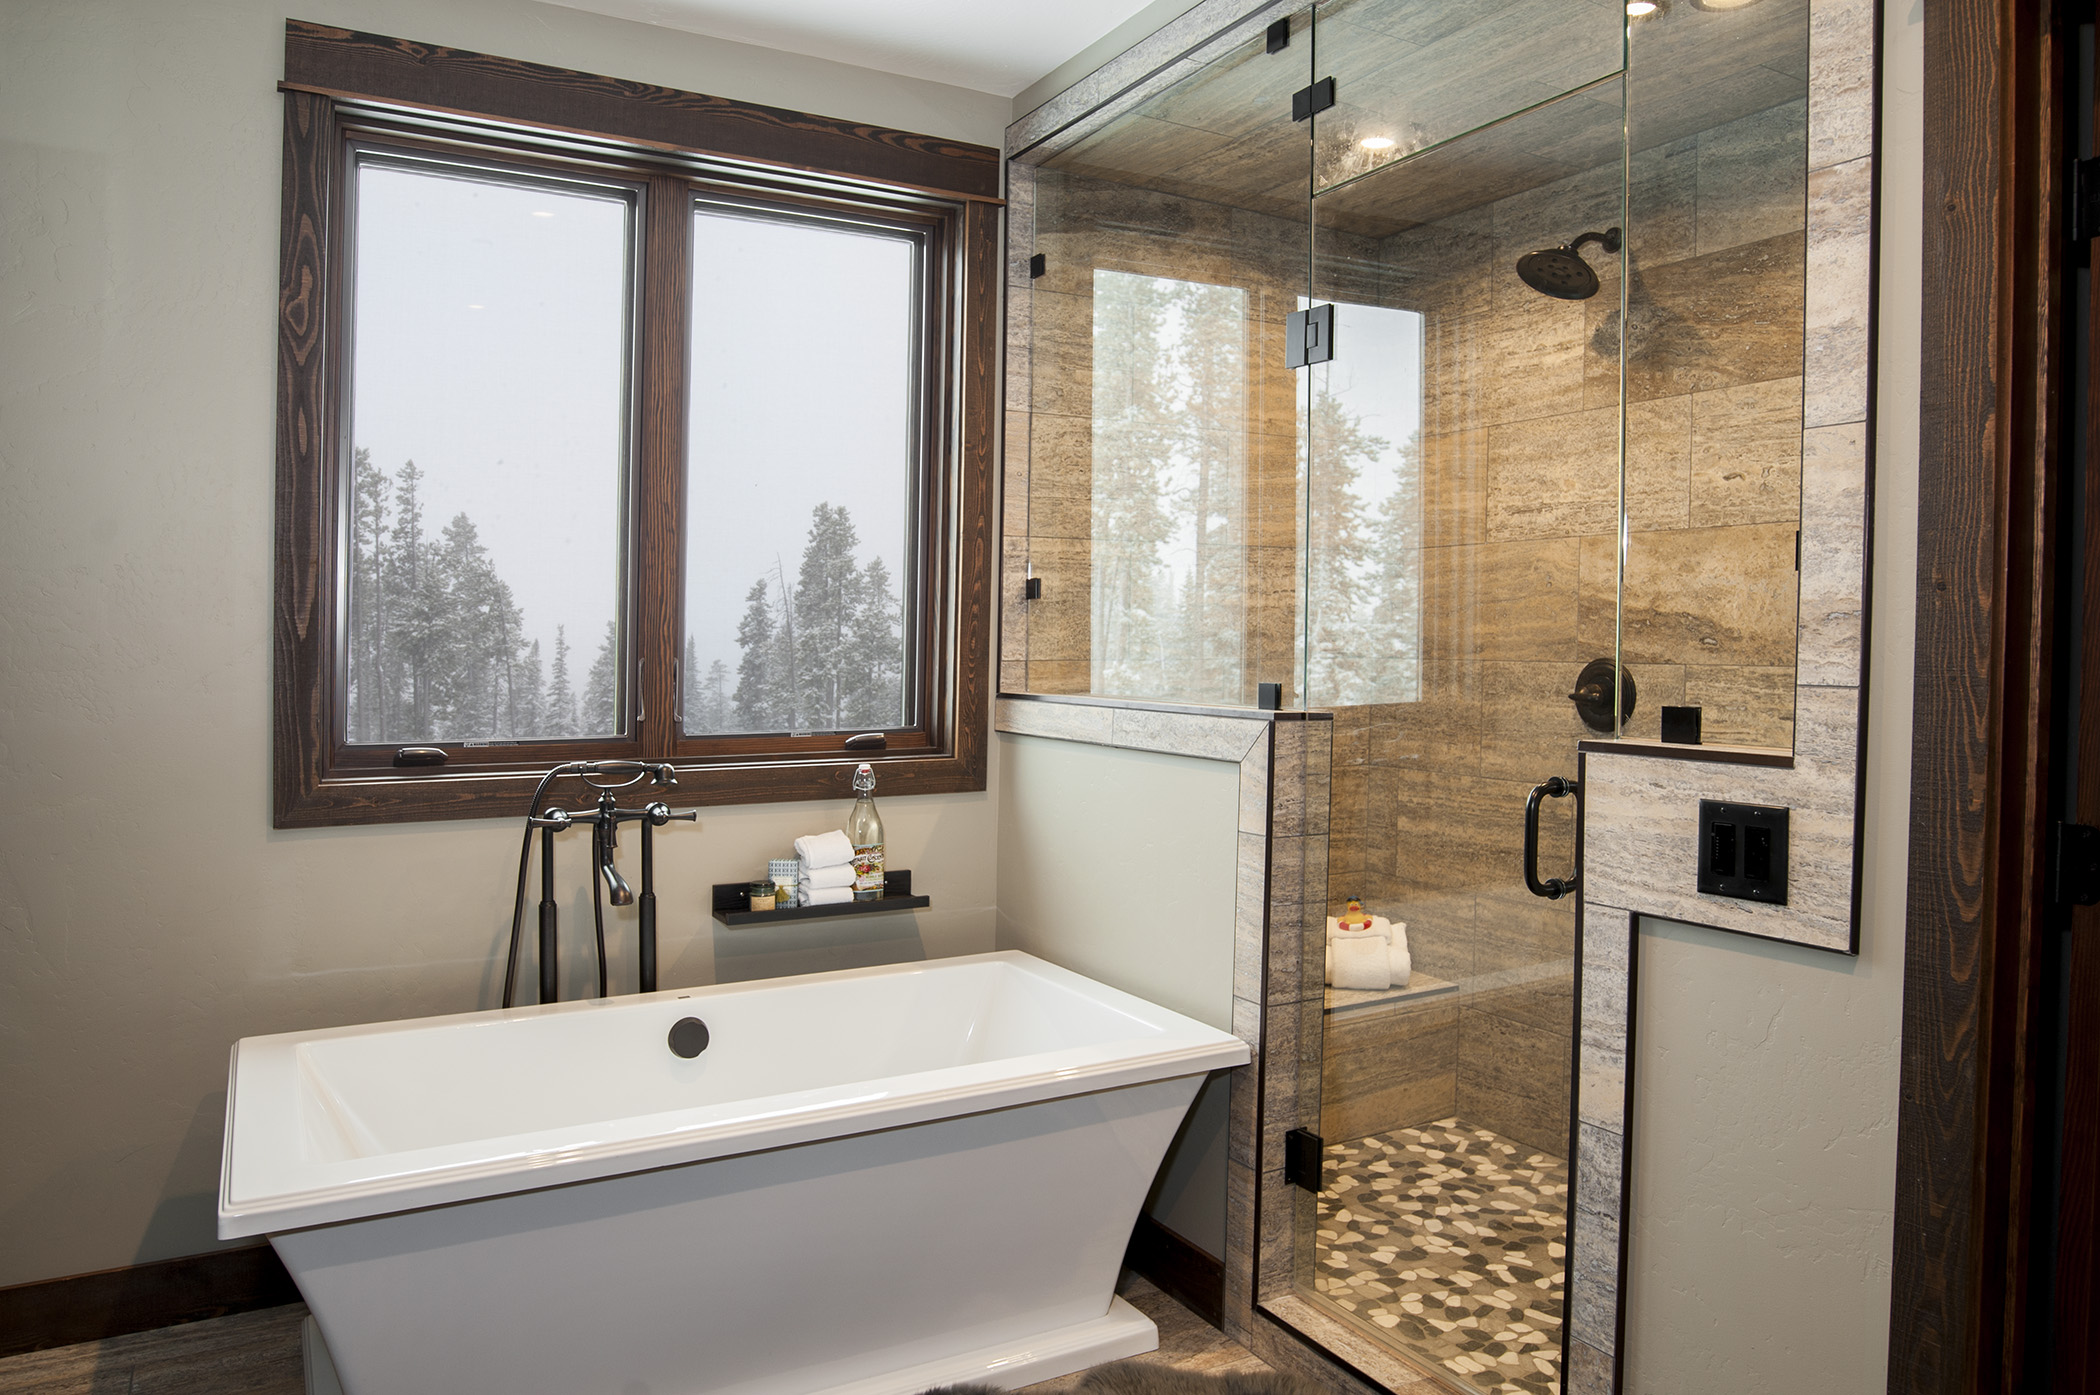 master bathroom3 sm.jpg